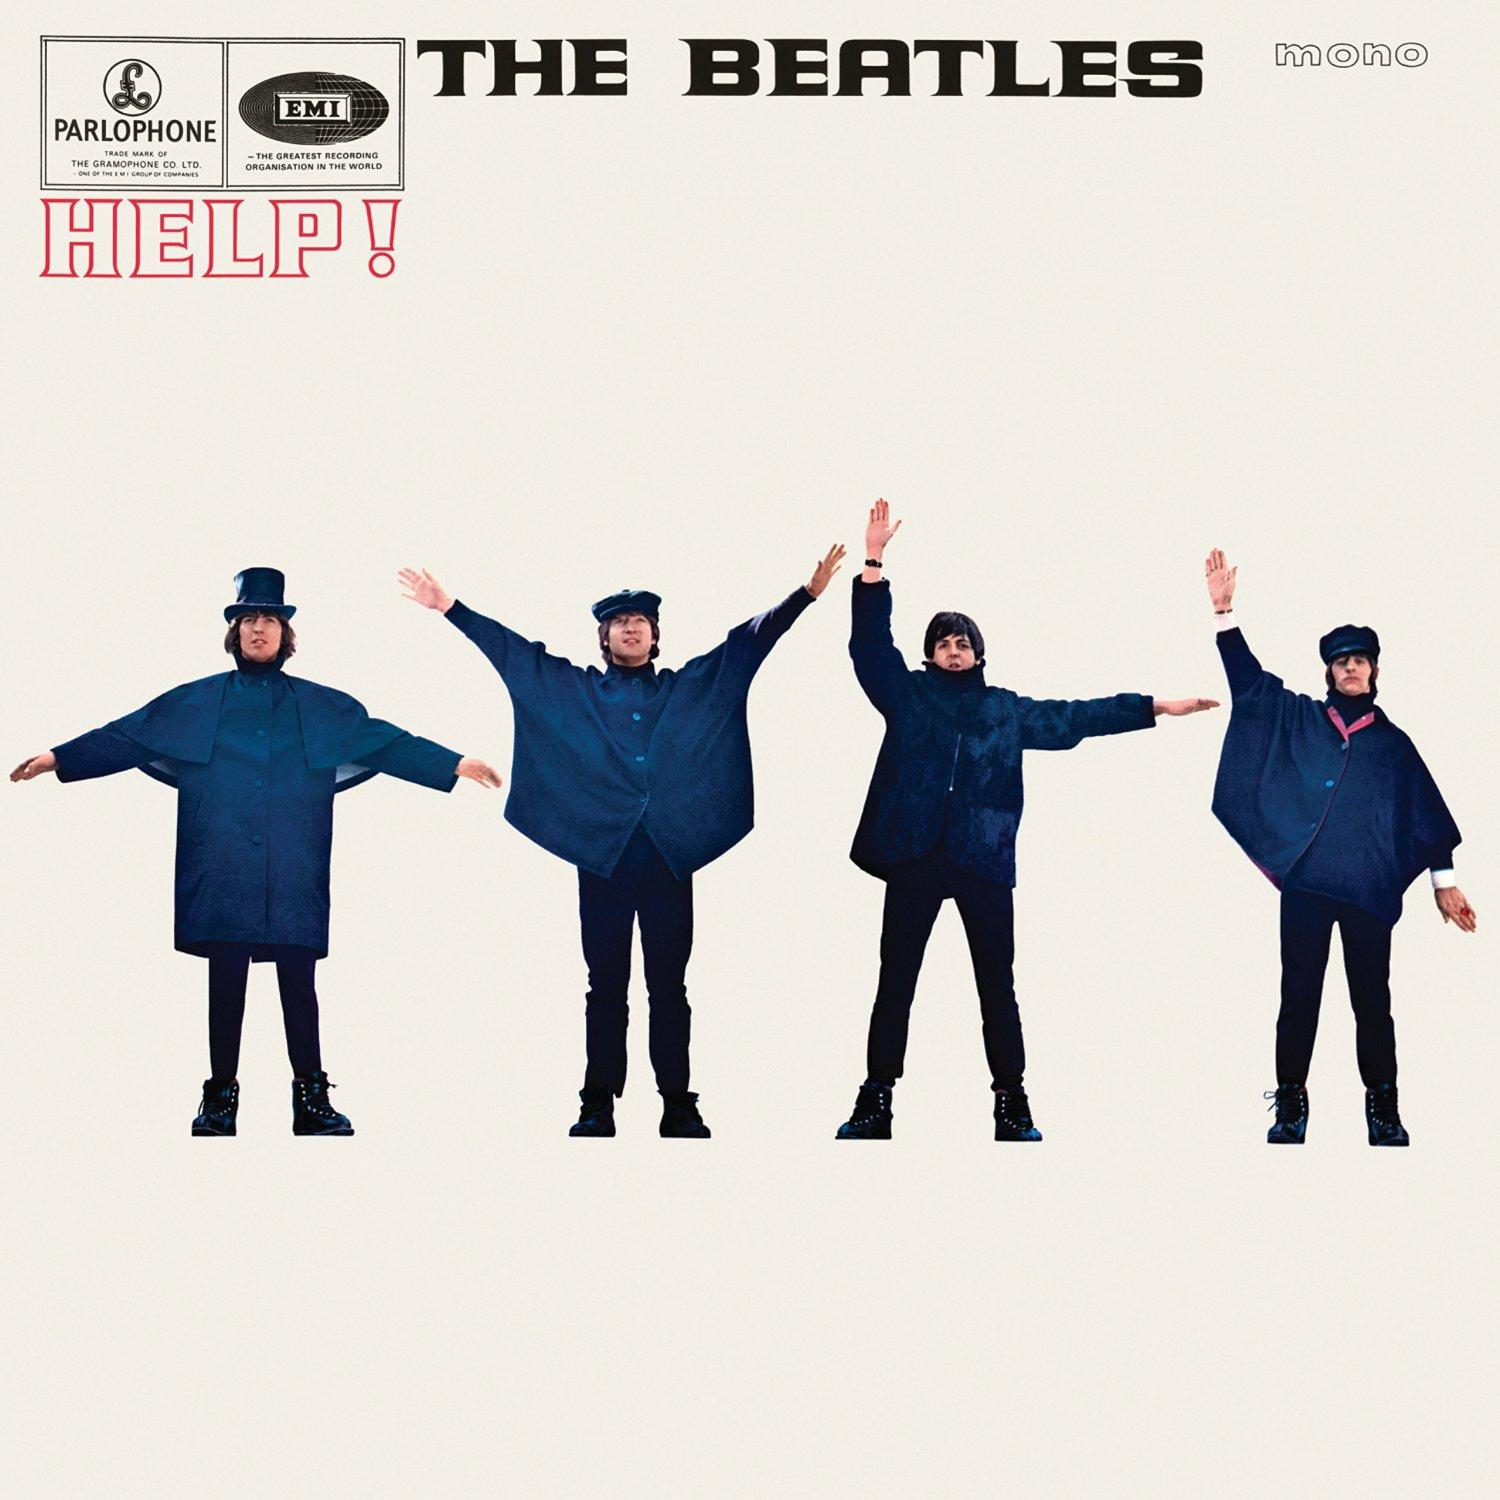 vinyl LP THE BEATLES Help!